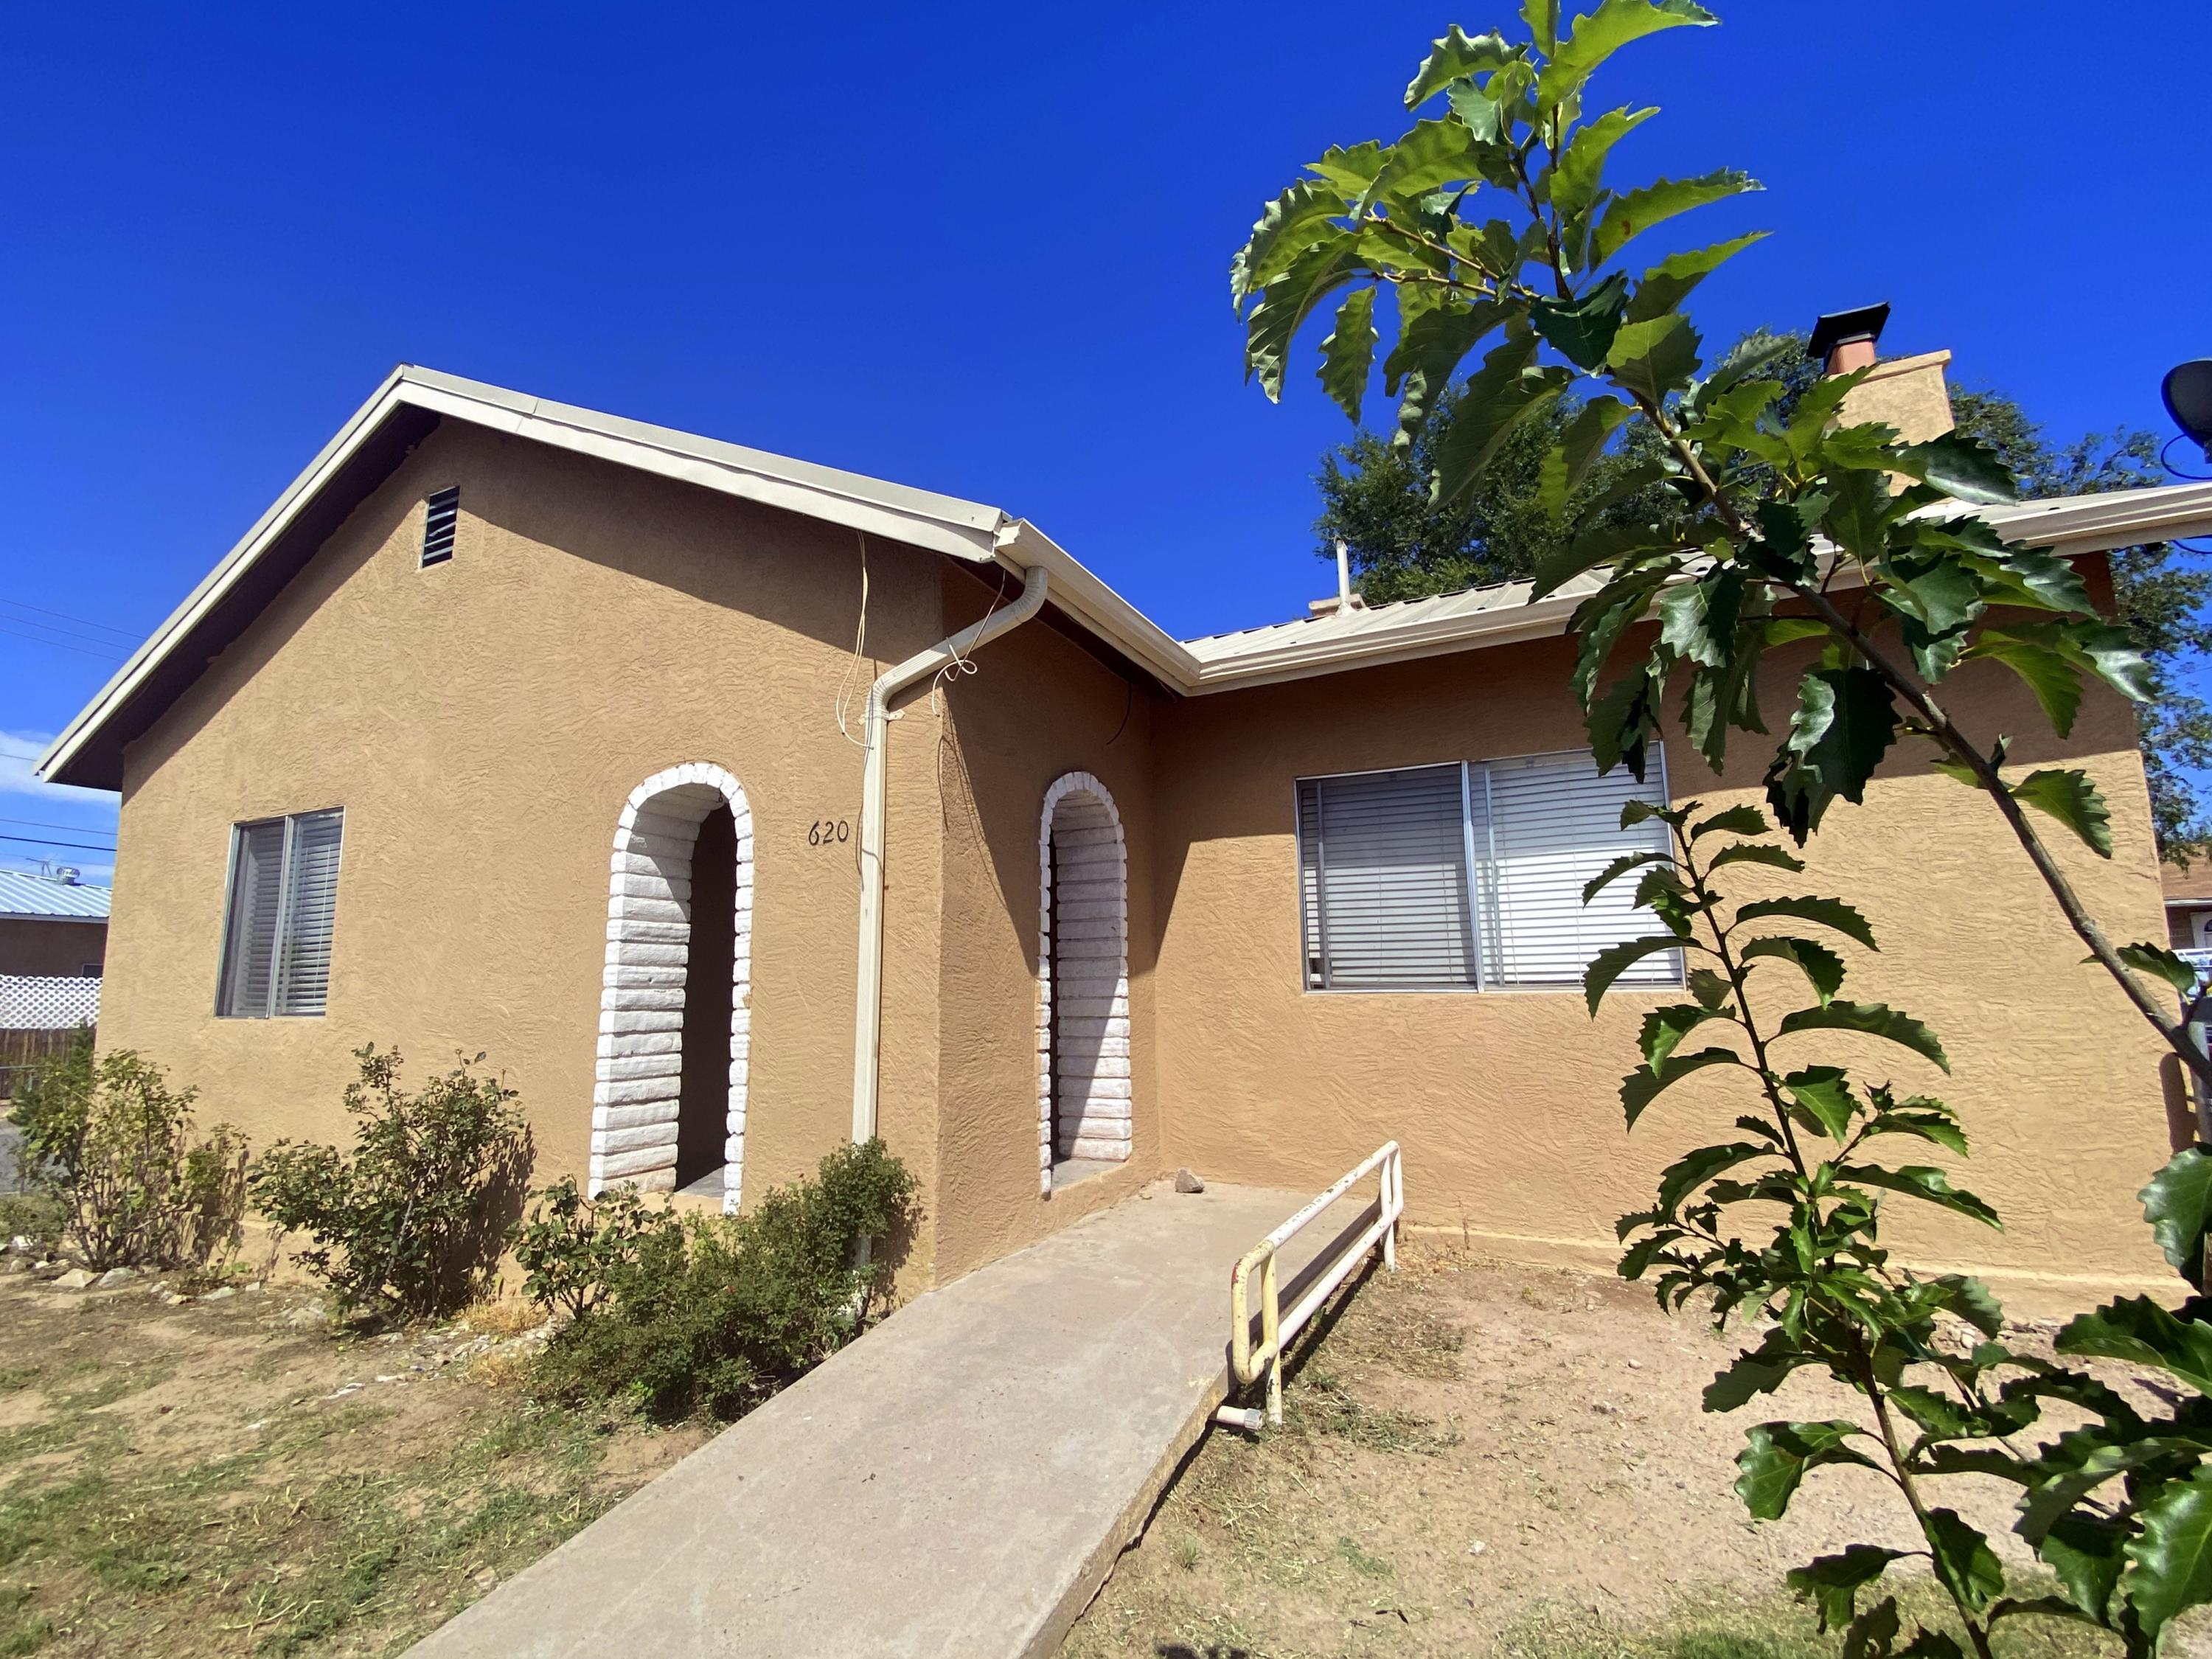 Charming Investment Property in the Heart of Belen. 1,462 SF Adobe Duplex with New Metal Roof, less than one year old. Naturally Well Lit, Hardwood floors and Roomy Bedrooms. Easy to lease. Unit A is 628 SF with 2 bedrooms and 1 bathroom and rents for $600/month. Unit B has a tenant and is 834 SF with 1 bedroom and 1 bathroom and rents for $500/month.